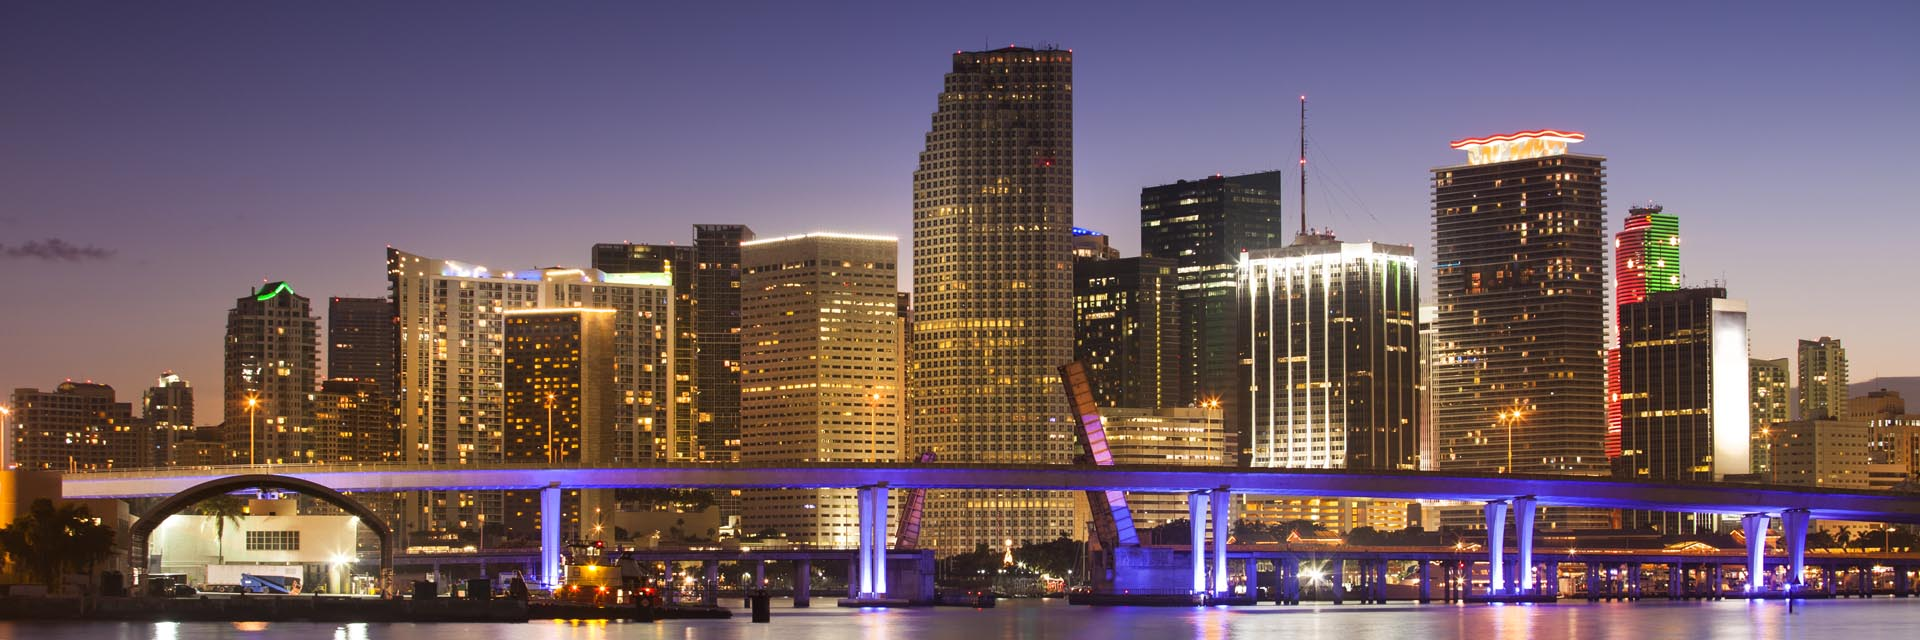 Downtown Miami, Florida At Night